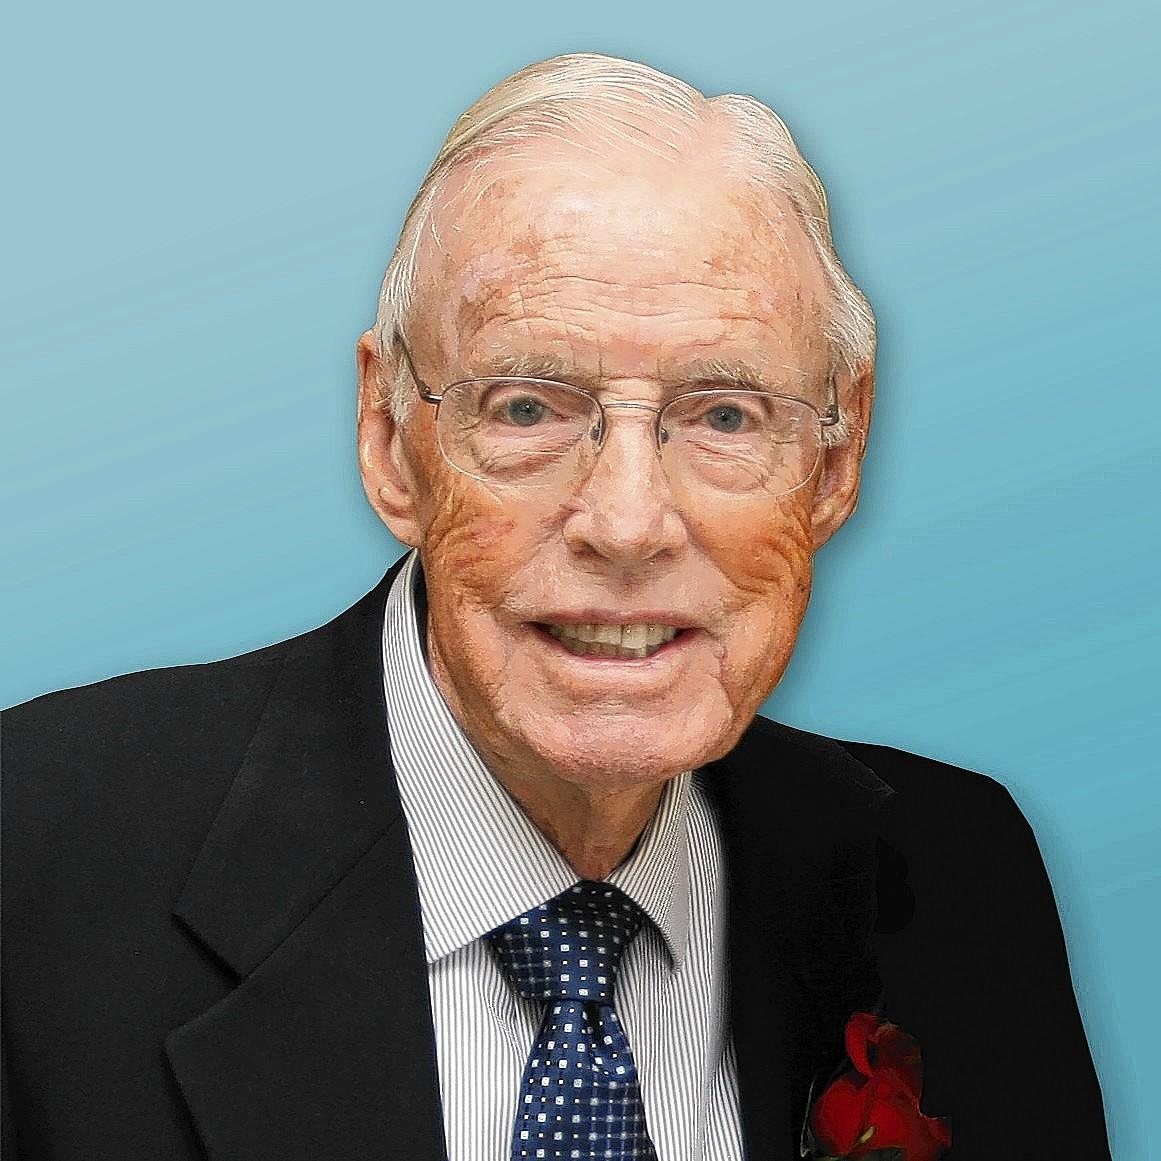 Stewart Owen had a knack for kind-hearted leadership. Owen died Saturday, July 5. He was 92.